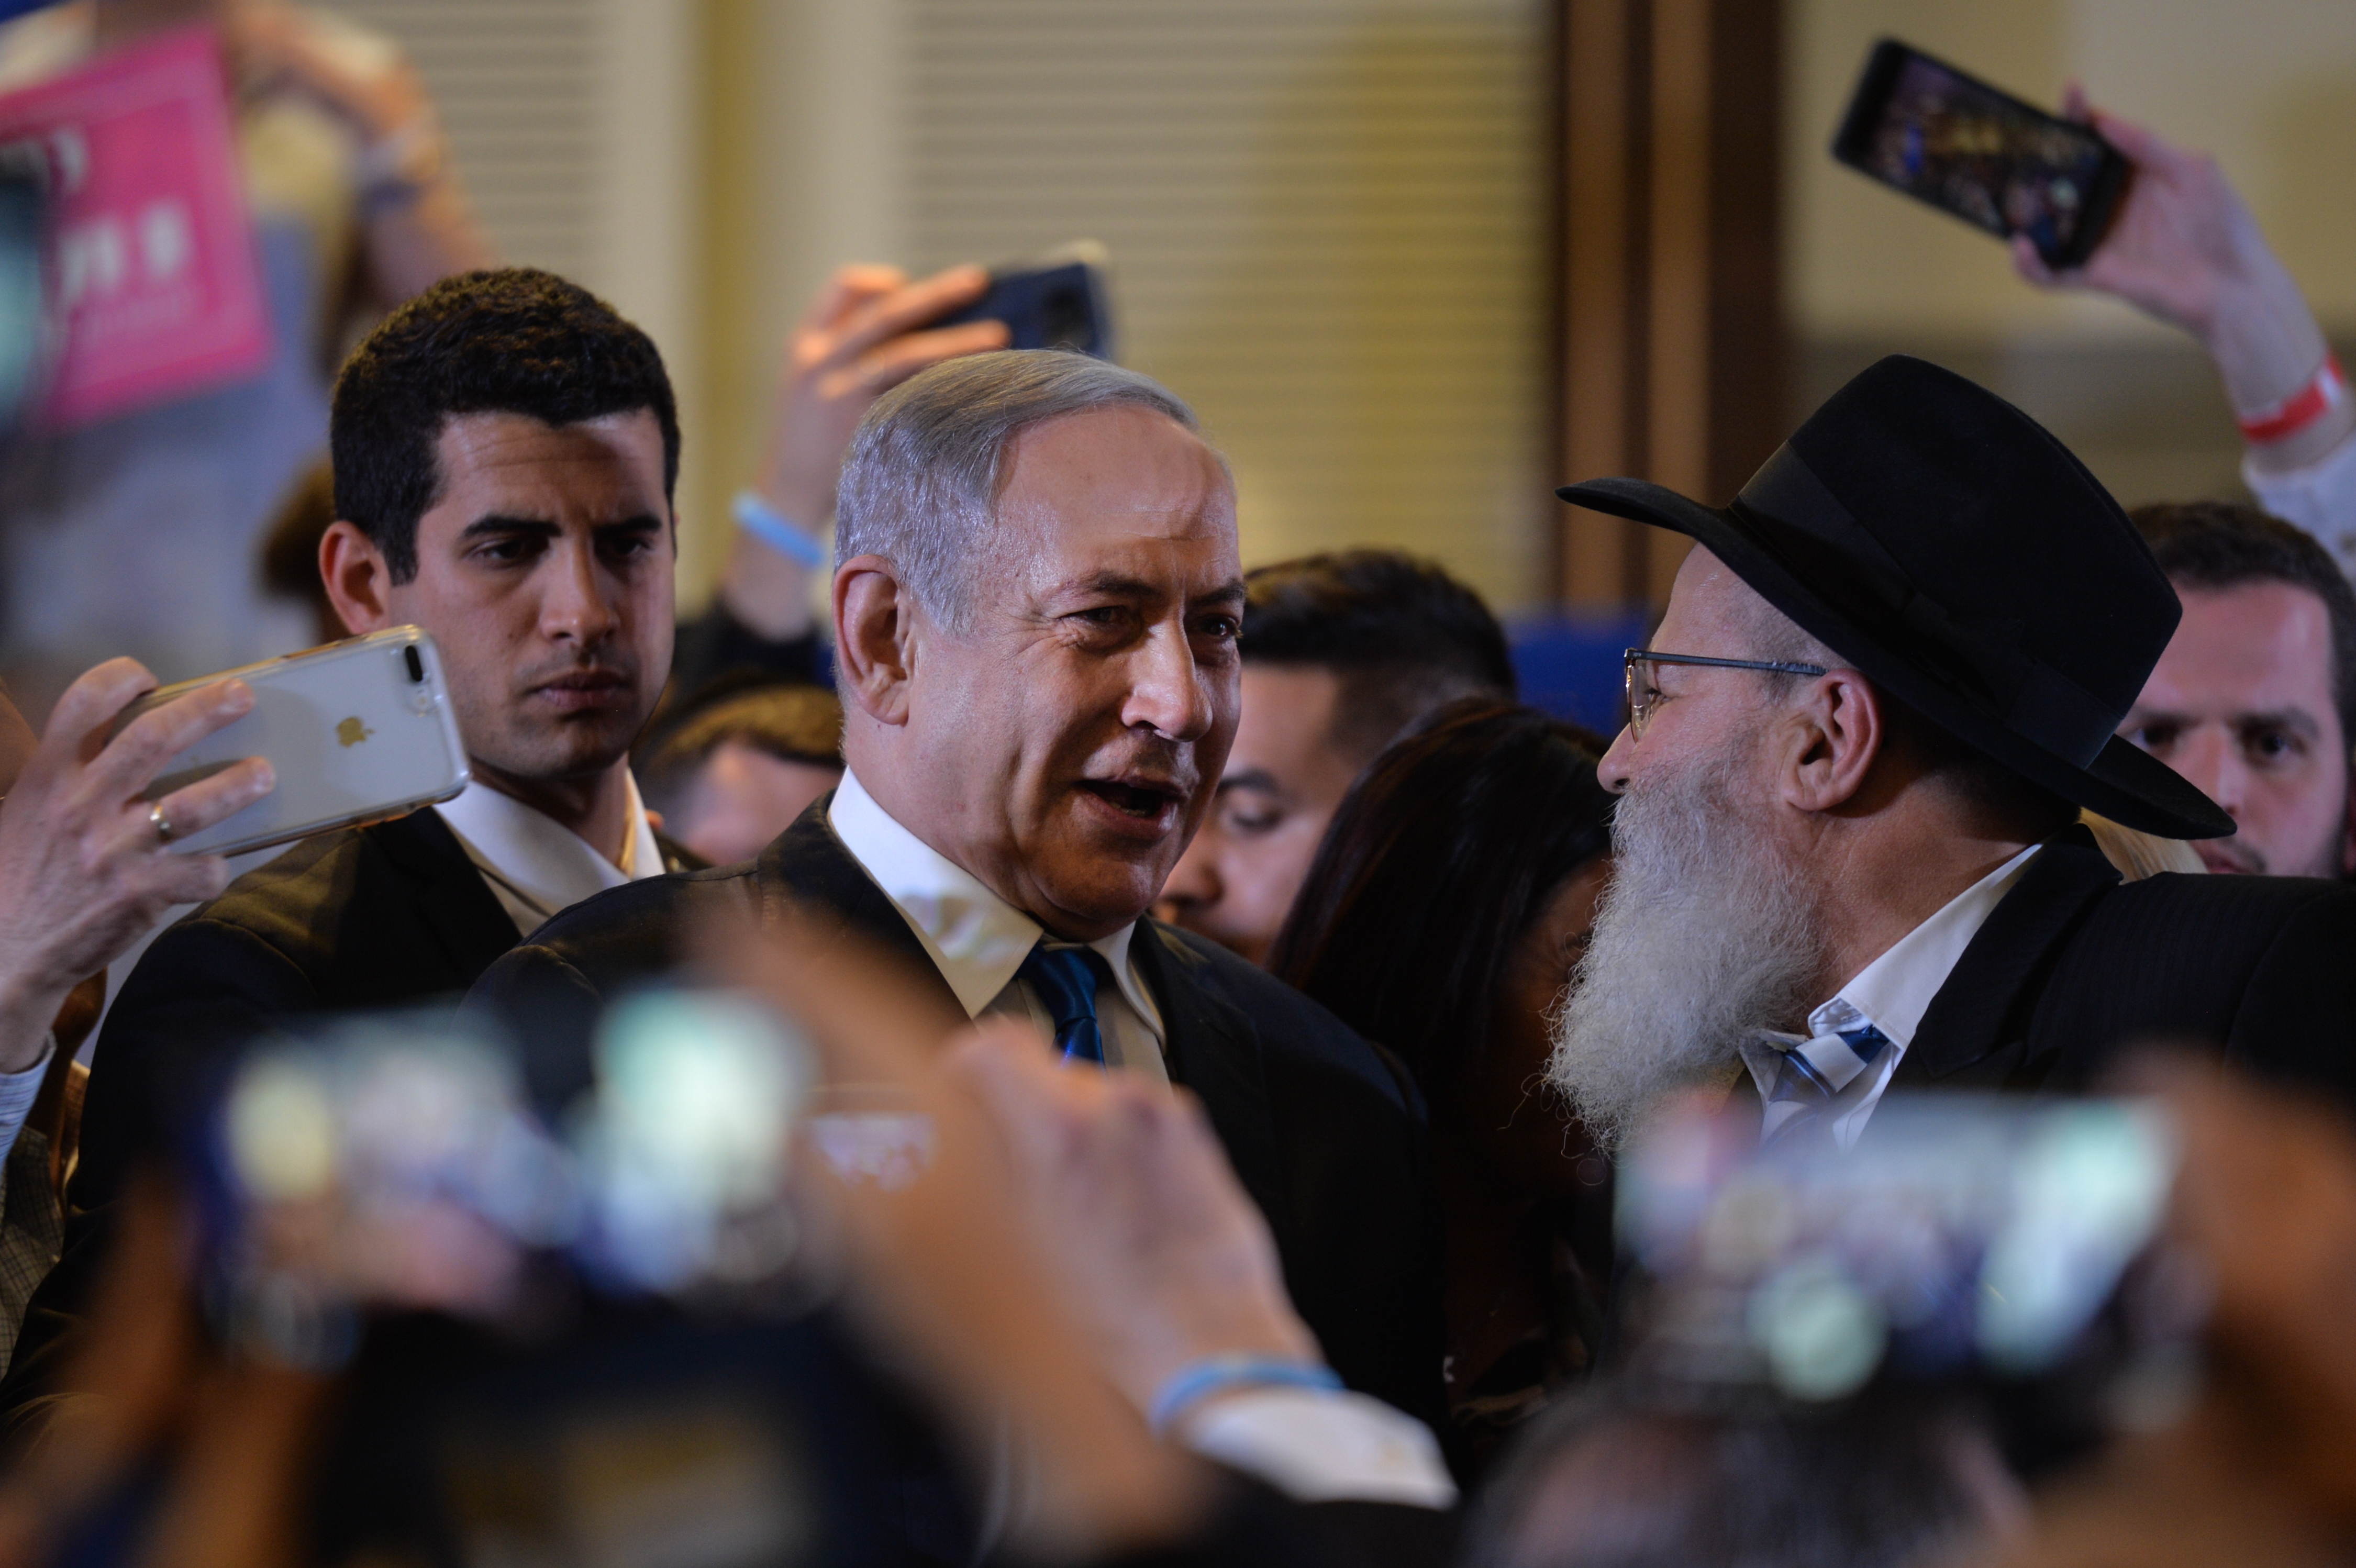 Israeli Prime Minister Benjamin Netanyahu meet his supporters during a Likud party upcoming election campaign rally in Jerusalem on Wednesday, February 26, 2020, in Jerusalem, Israel.